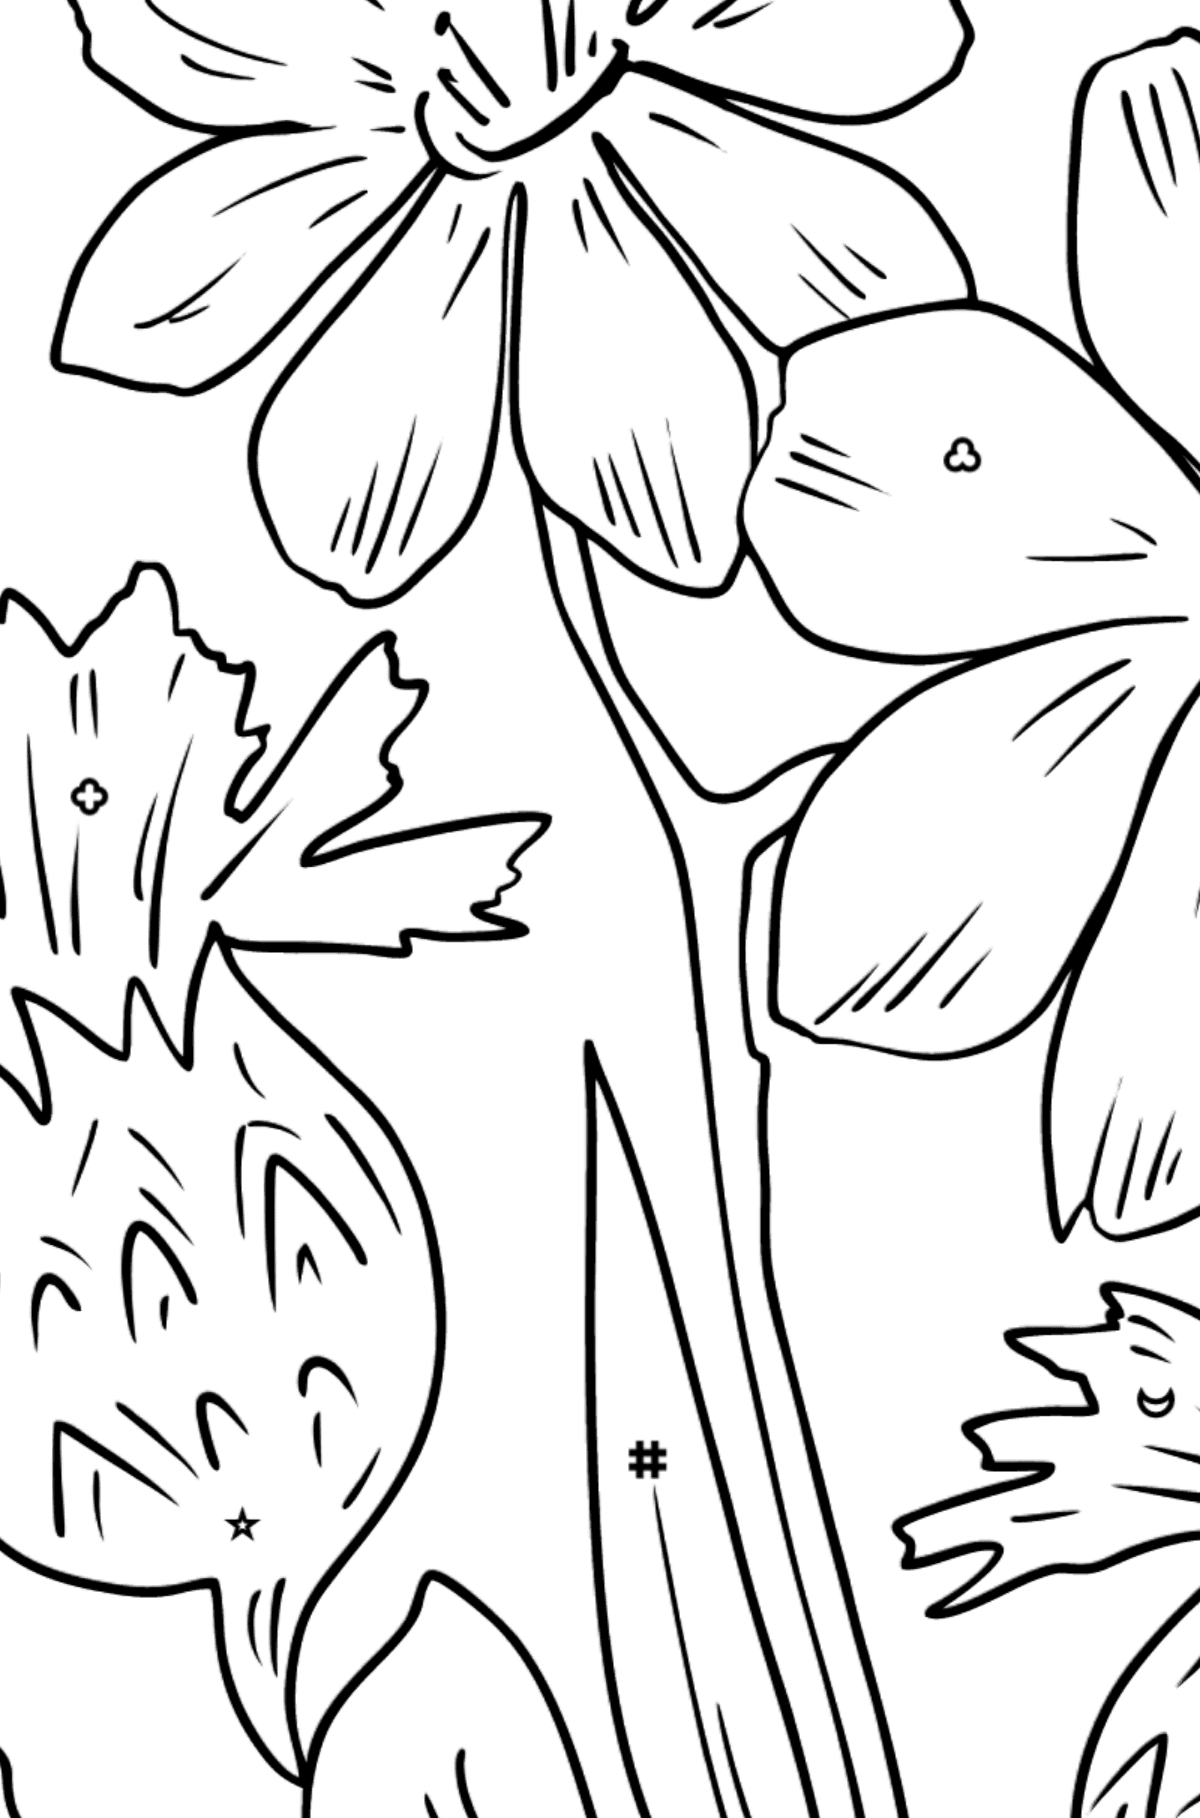 Flower Coloring Page - flowers in the meadow - Coloring by Symbols and Geometric Shapes for Kids